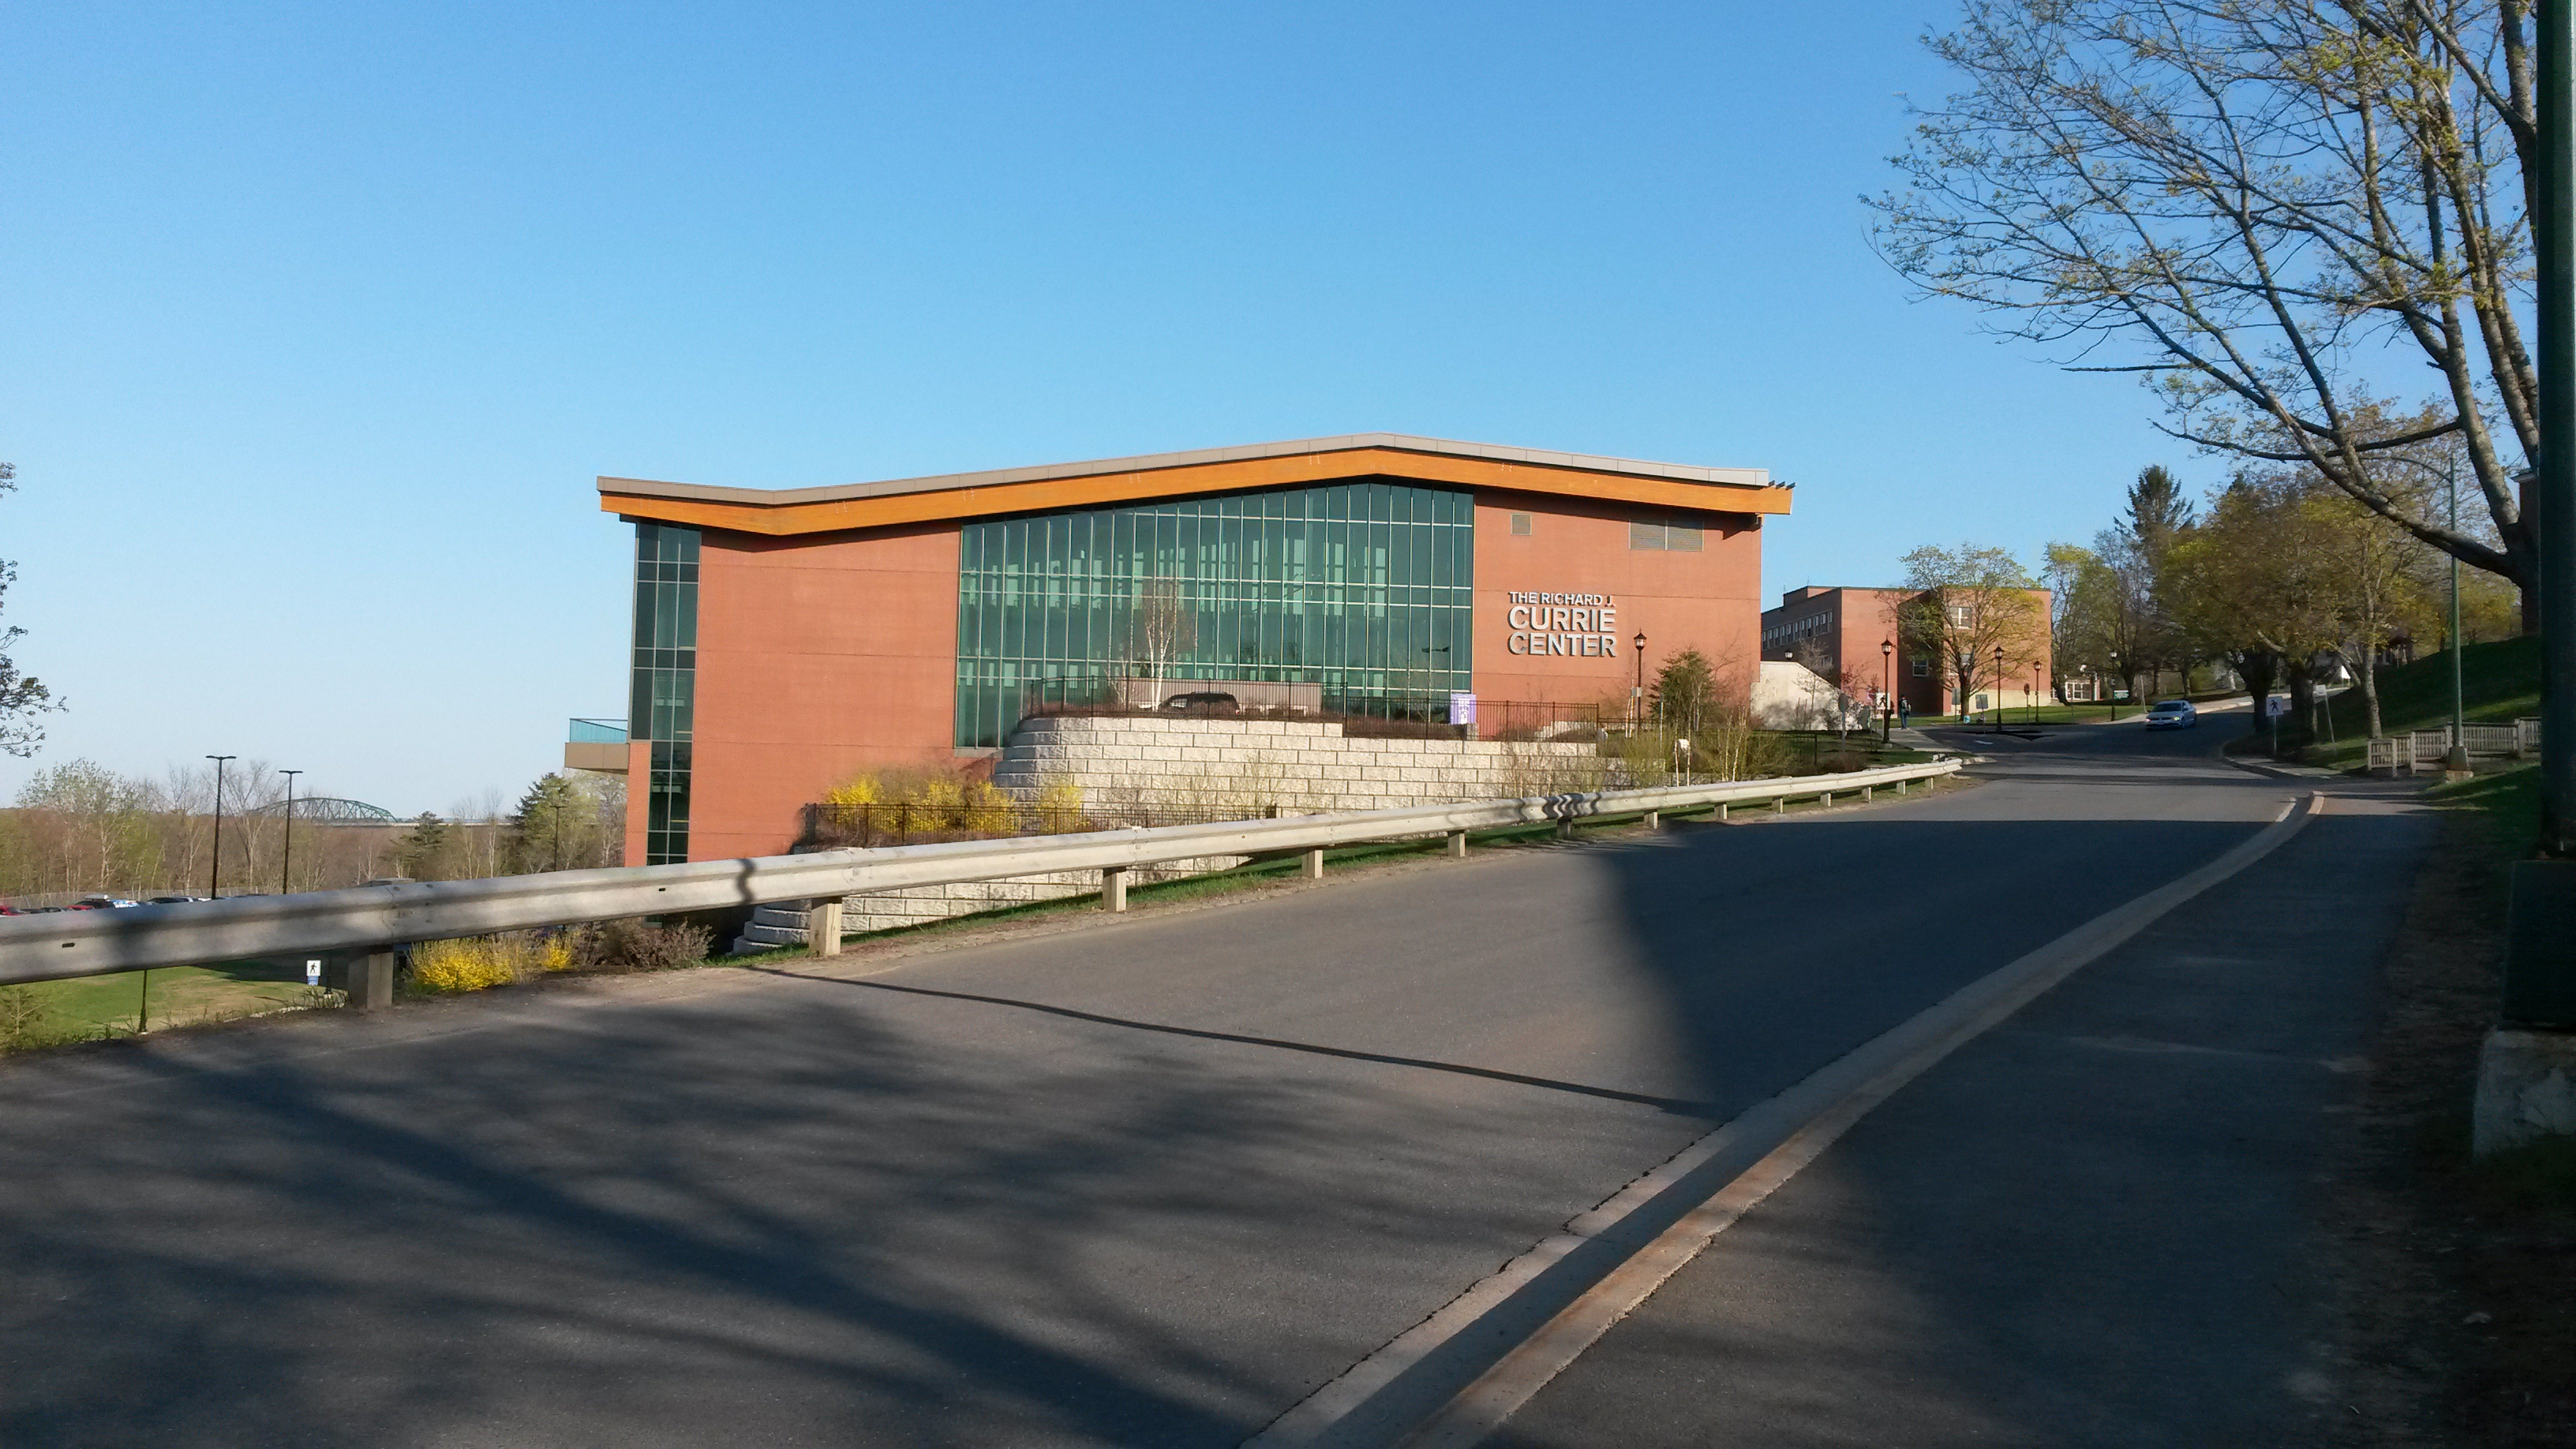 The venue: Currie Center at UNB